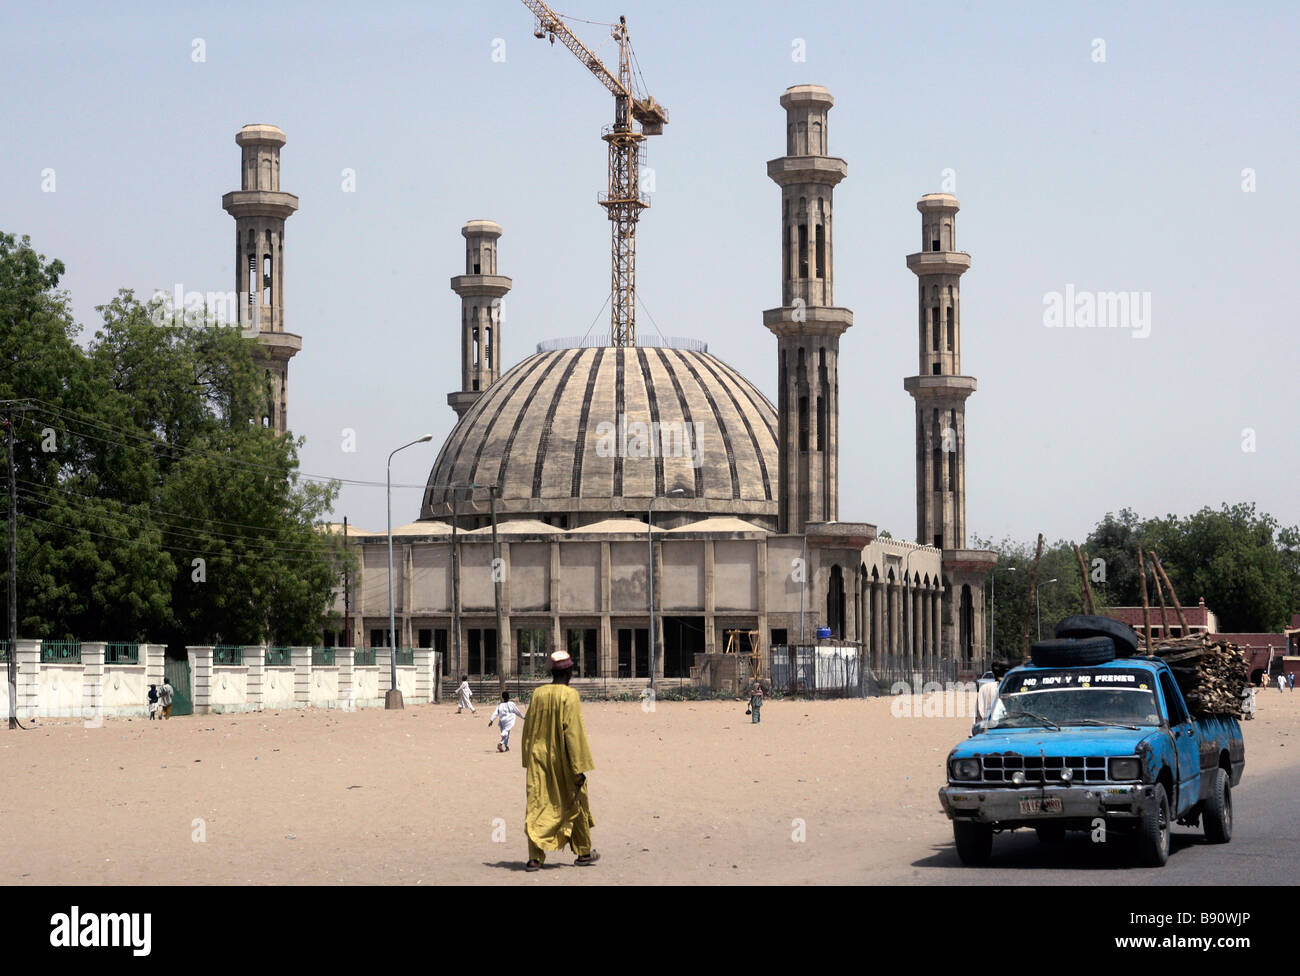 Nigeria: New building of the central mosque of Maiduguri - Stock Image